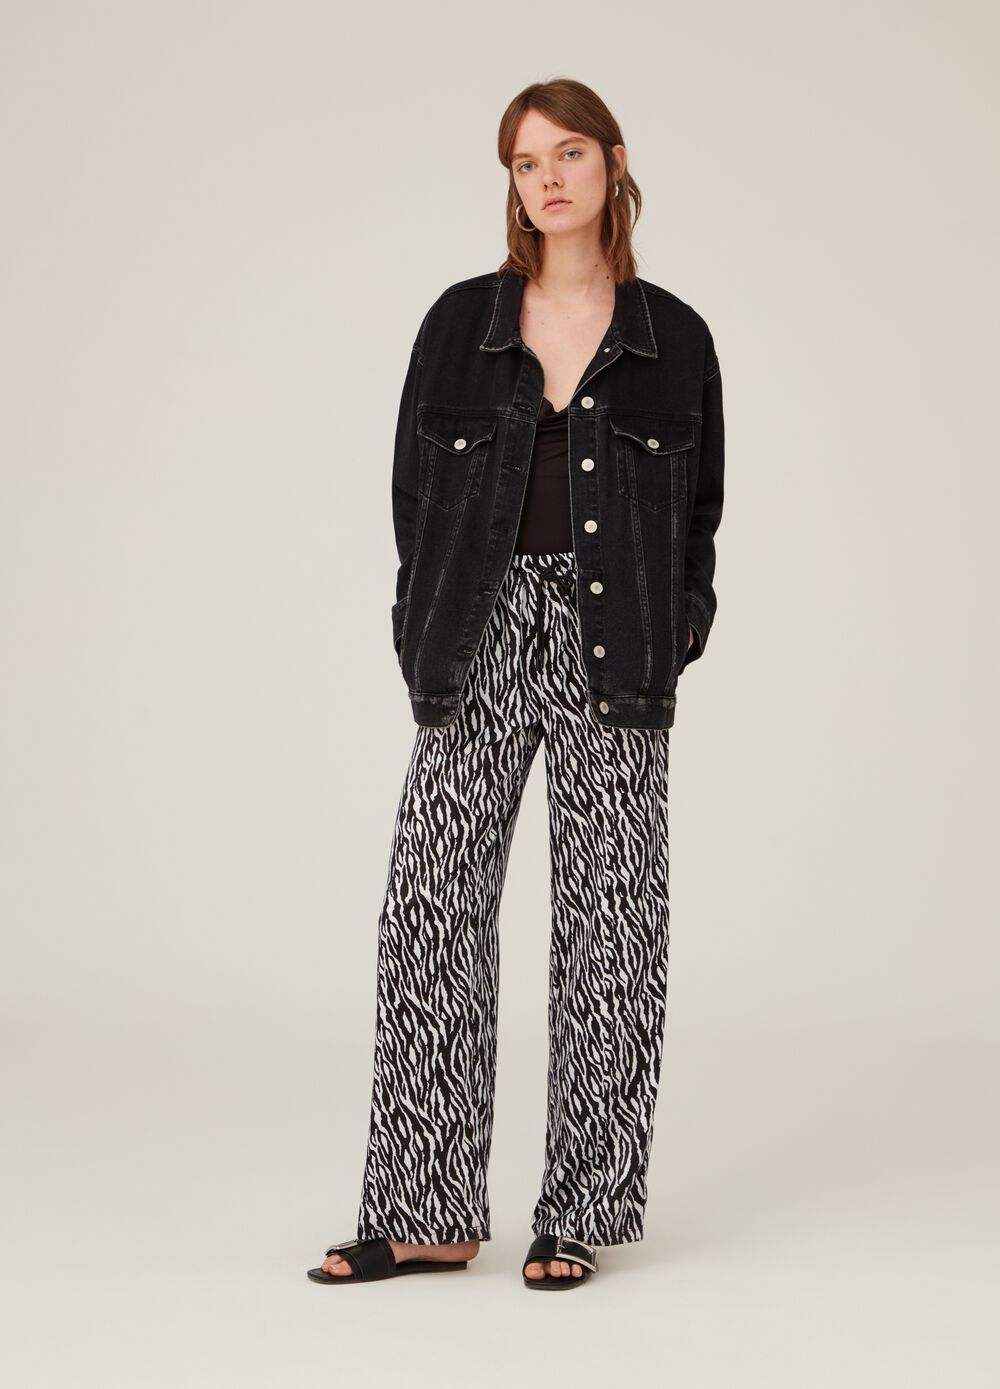 Satin-effect palazzo trousers with pattern